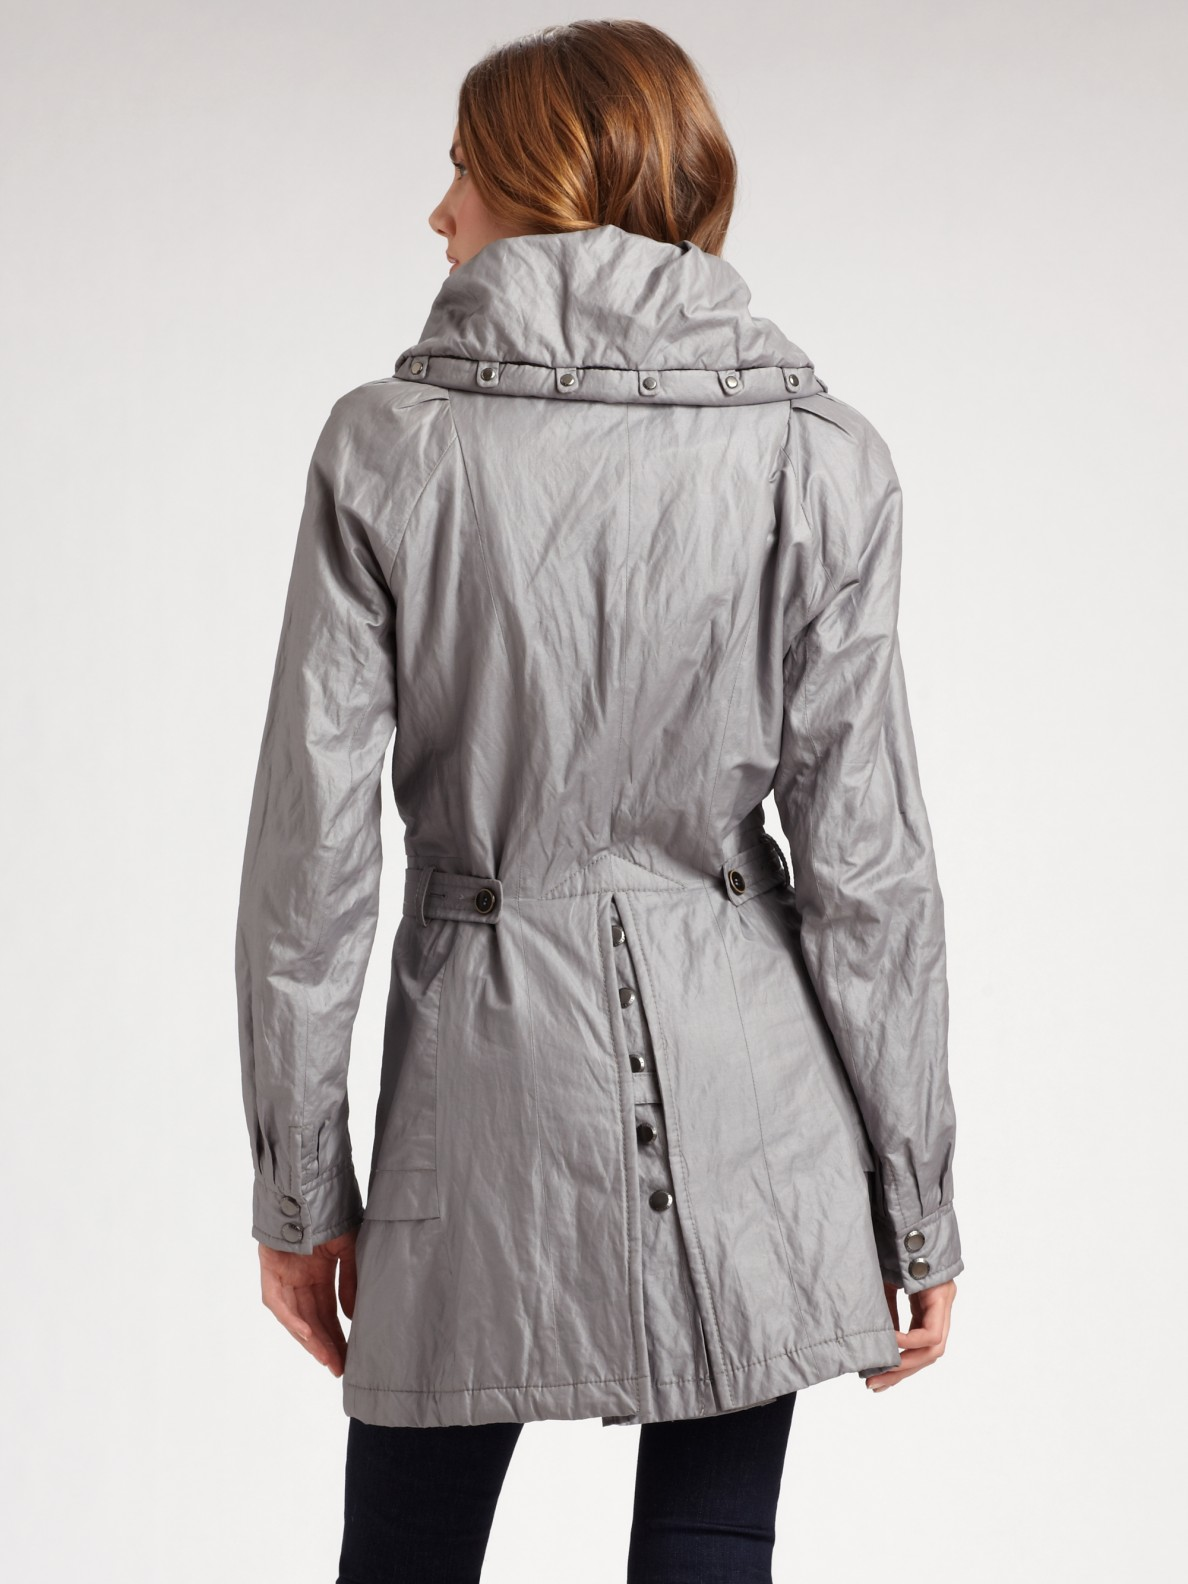 Lyst Creenstone Military Button Jacket In Gray